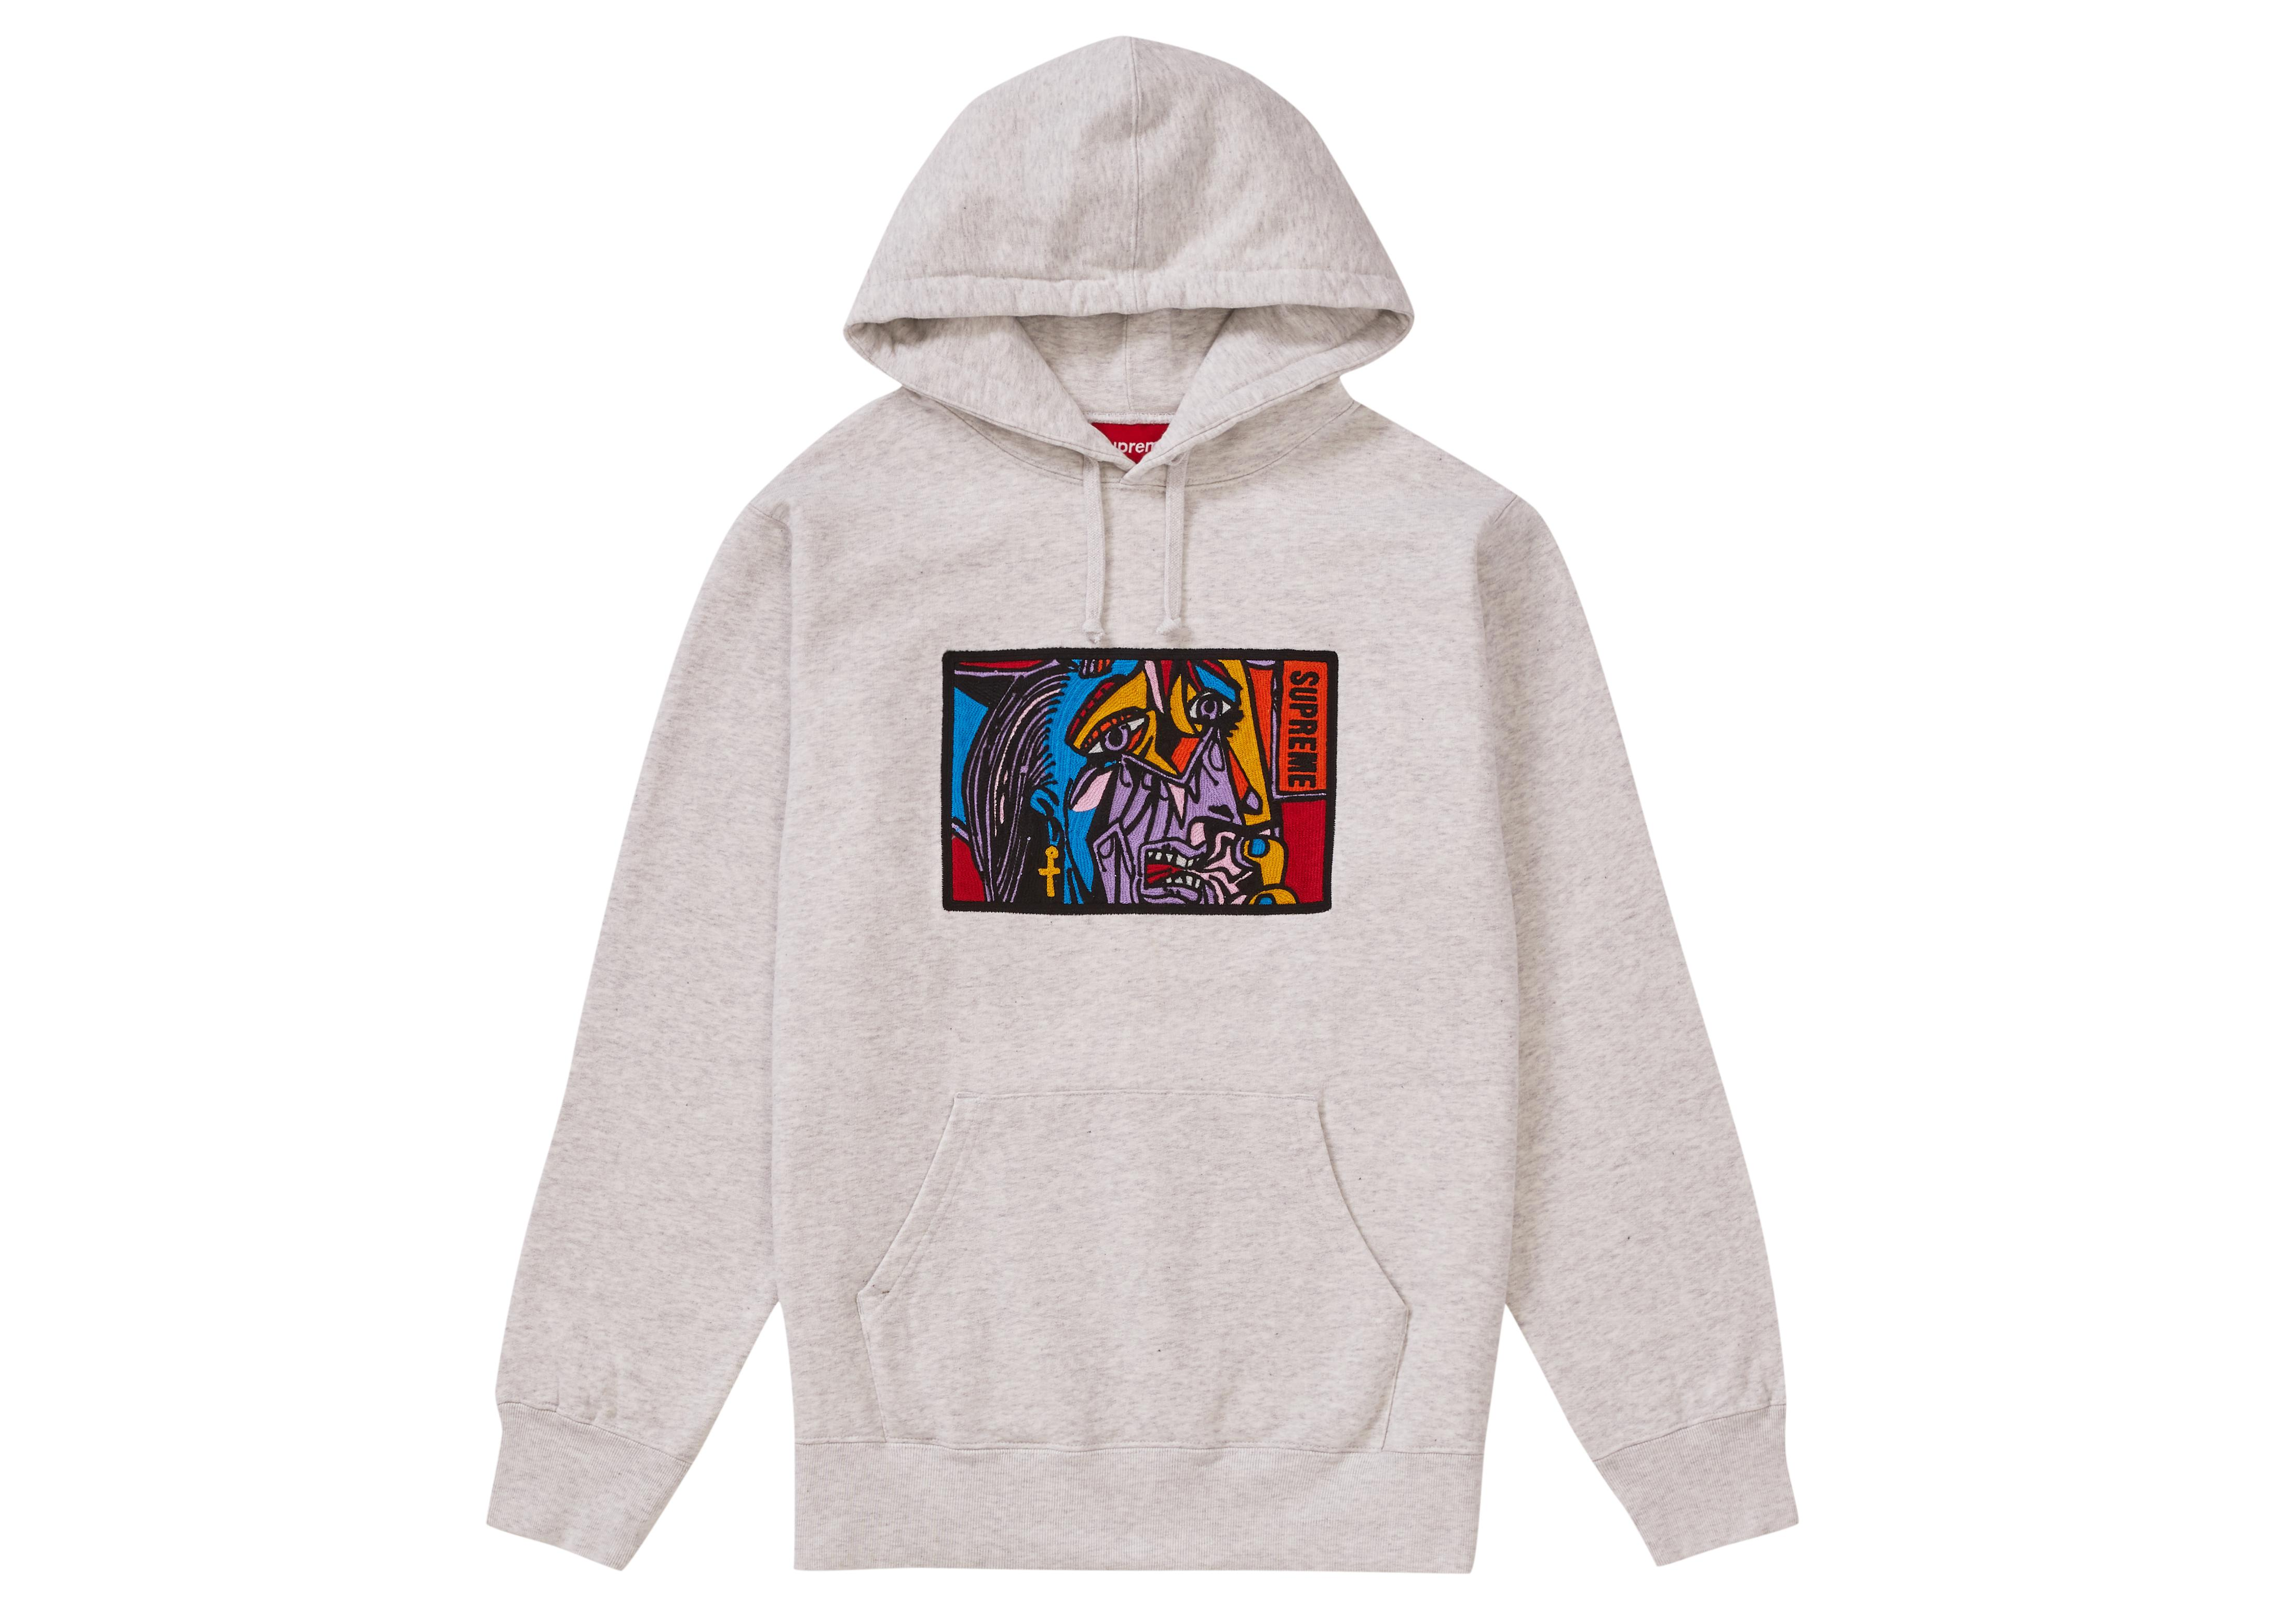 a38beb49 Tap to visit site. Supreme Gray Chainstitch Hooded Sweatshirt Ash Grey for  men